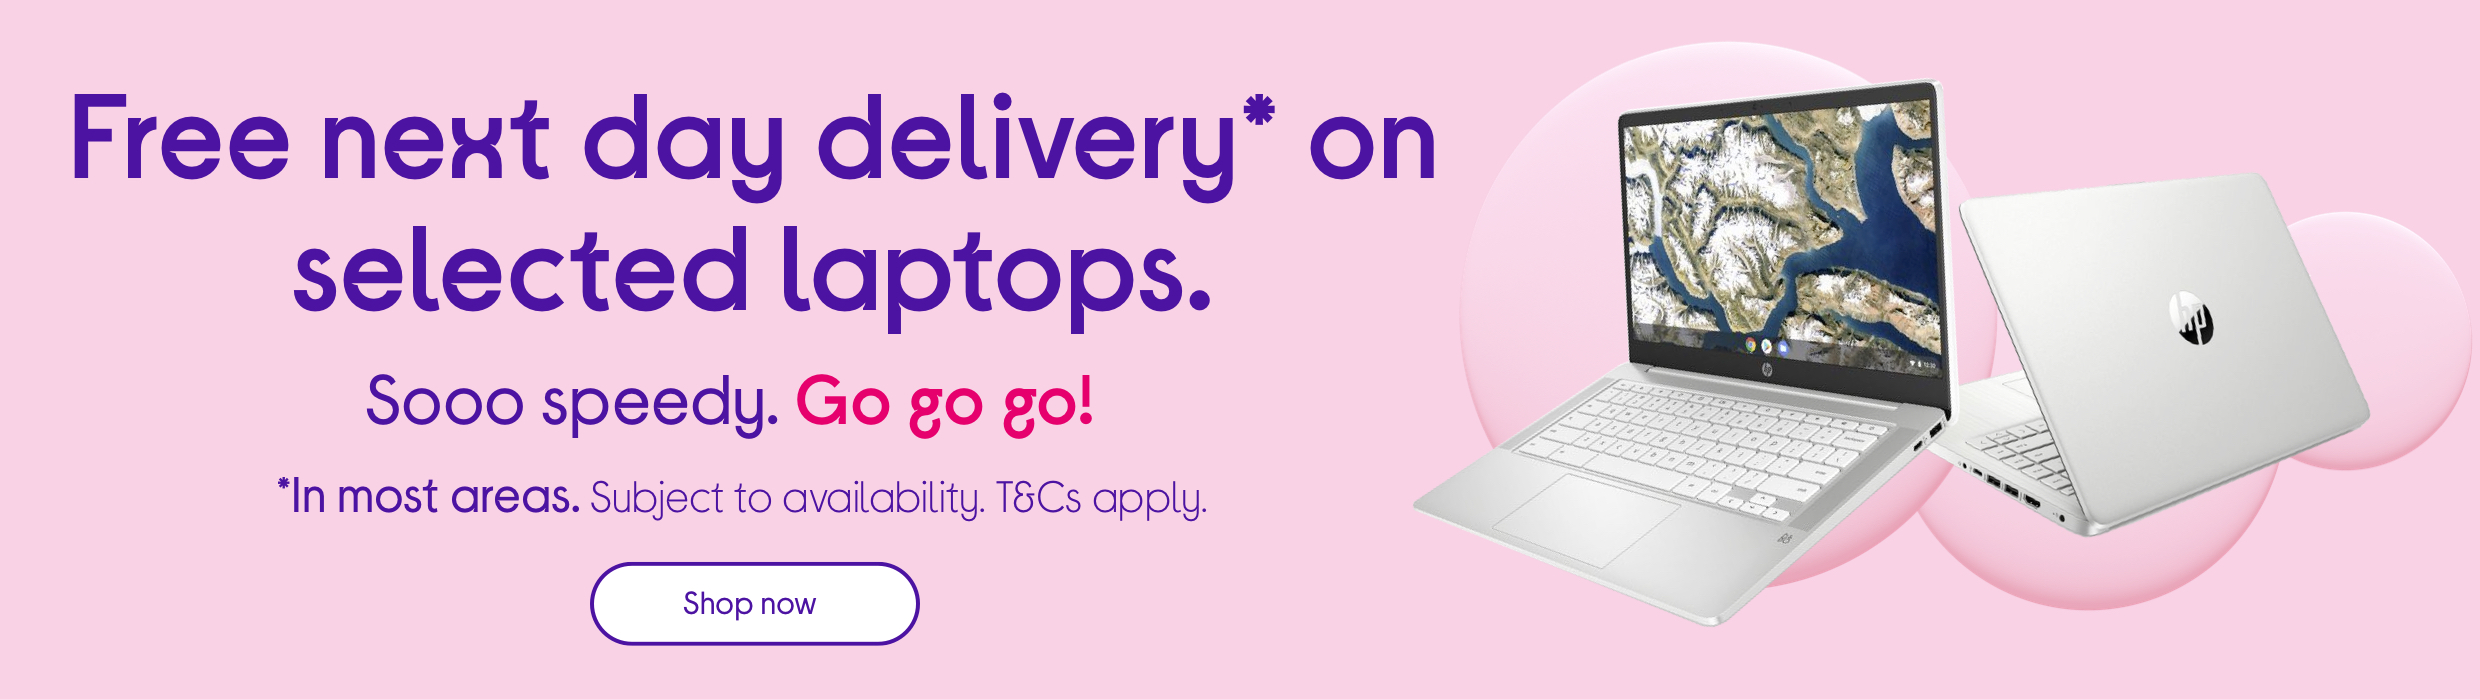 Free next day delivery on selected laptops